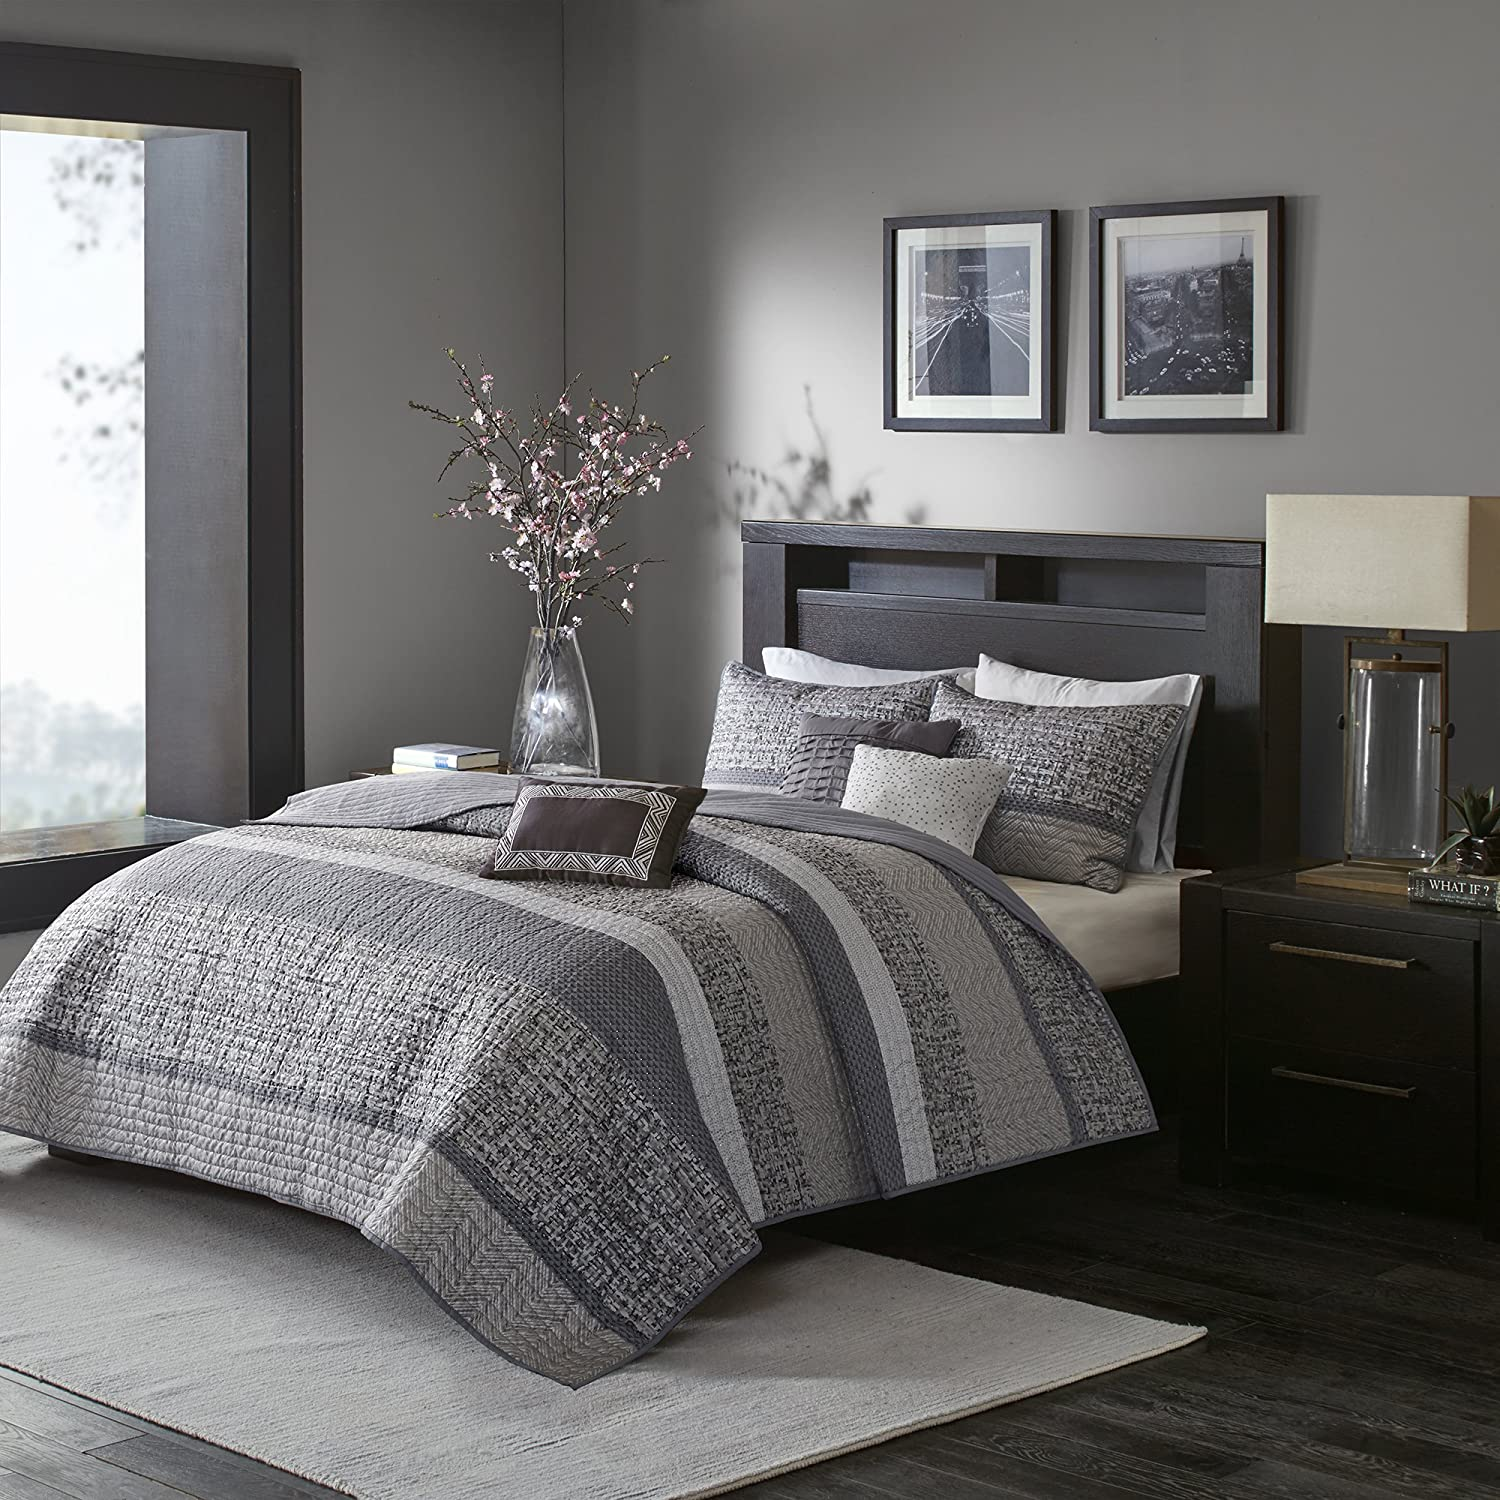 Madison Park Rhapsody Full Queen Size Quilt Bedding Set - Grey, Striped – 6 Piece Bedding Quilt Coverlets – Ultra Soft Microfiber Bed Quilts Quilted Coverlet